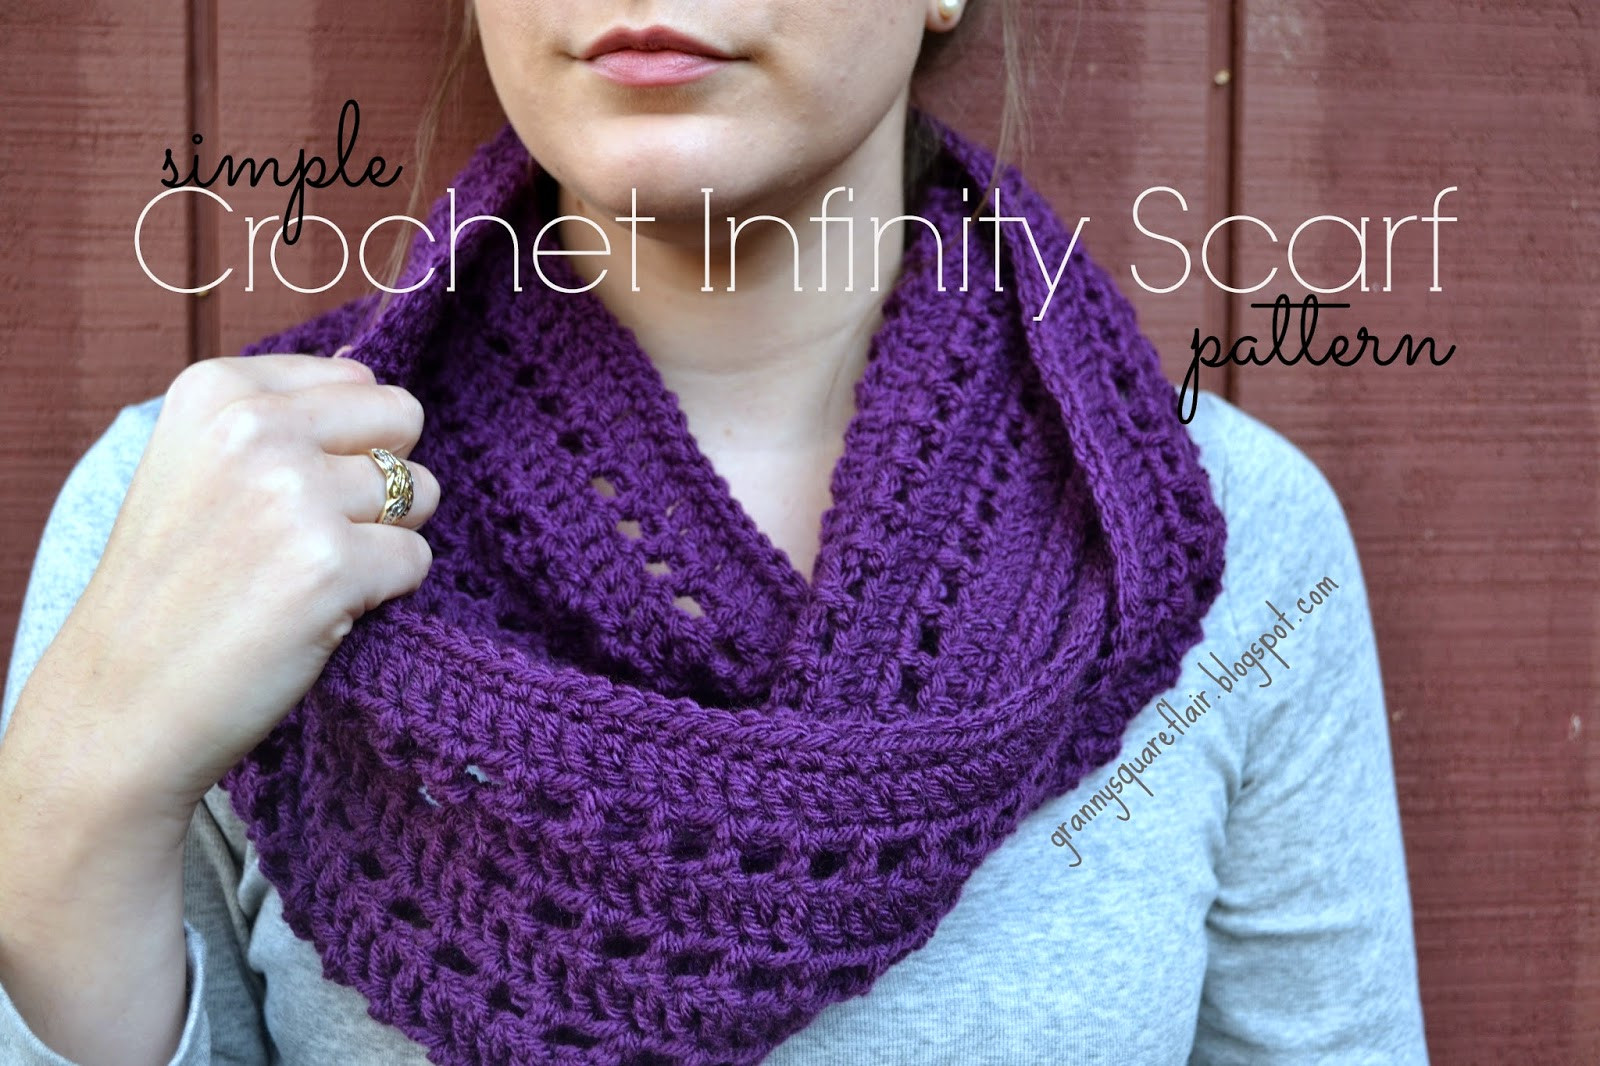 Granny Square Flair Simple Crochet Infinity Scarf Patteren